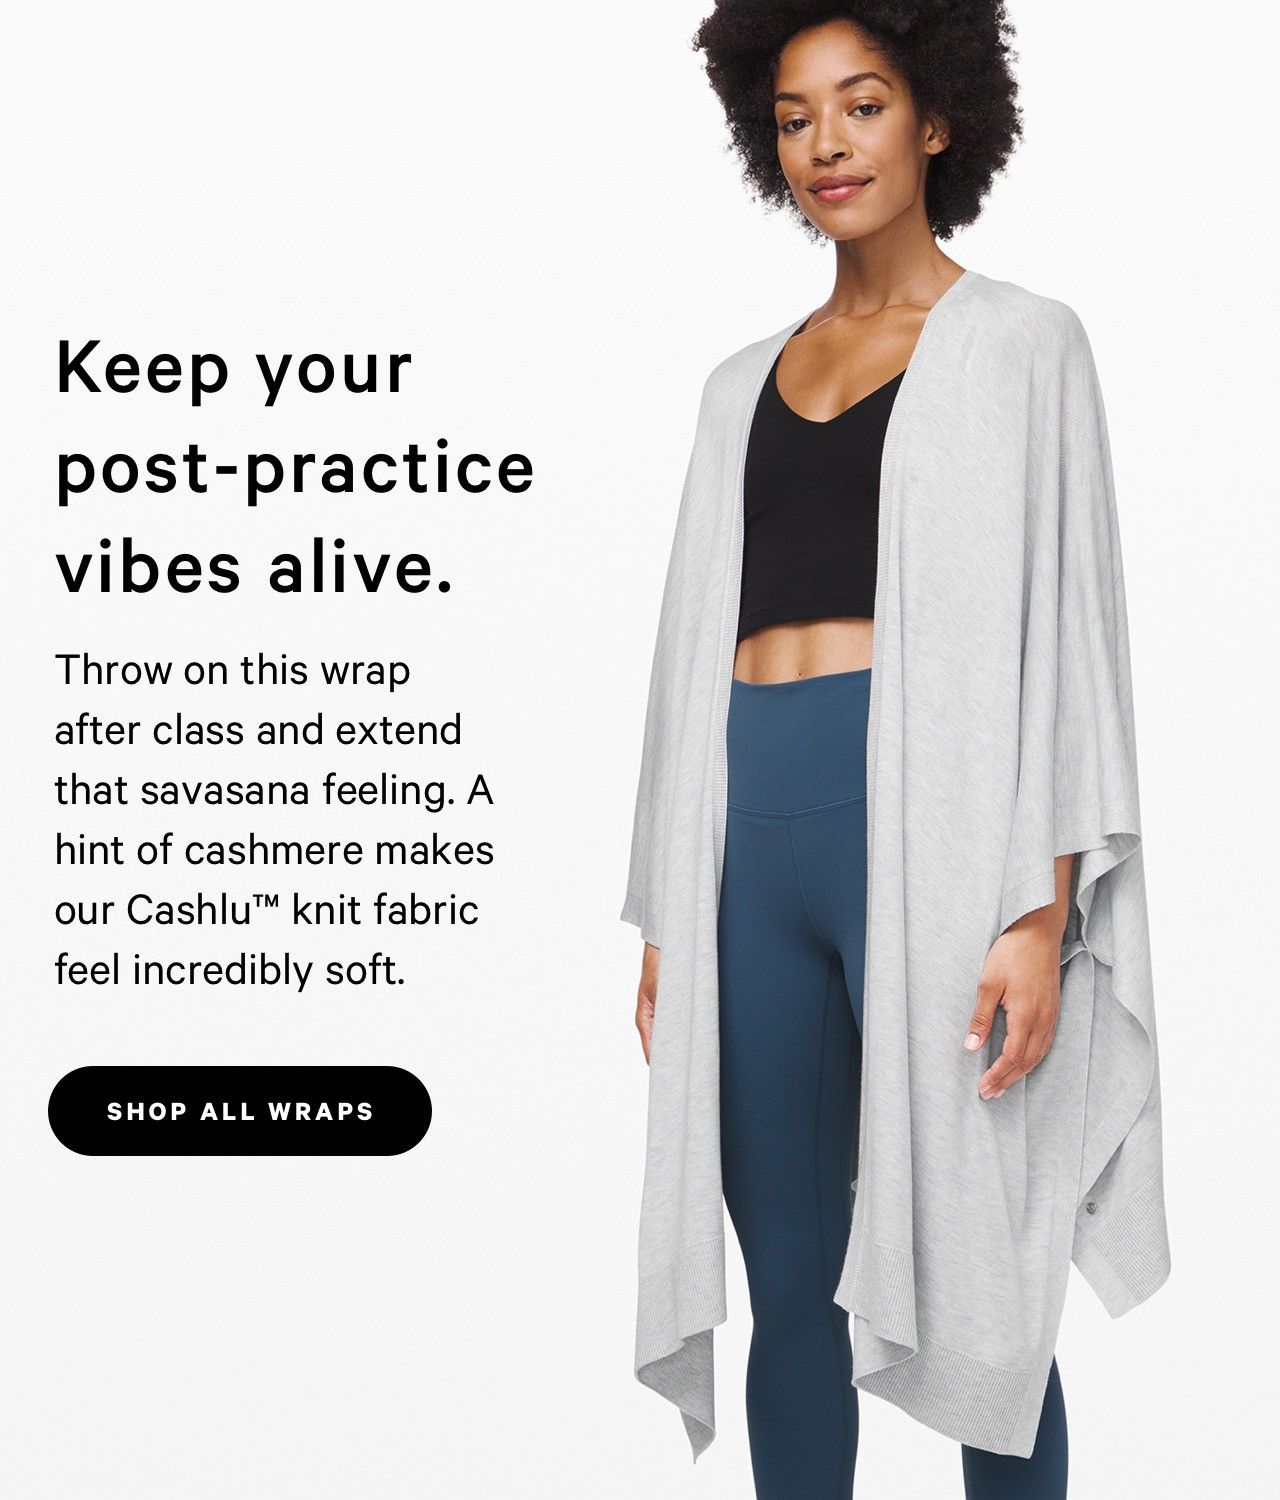 Keep your post-practice vibes alive. - shop all wraps